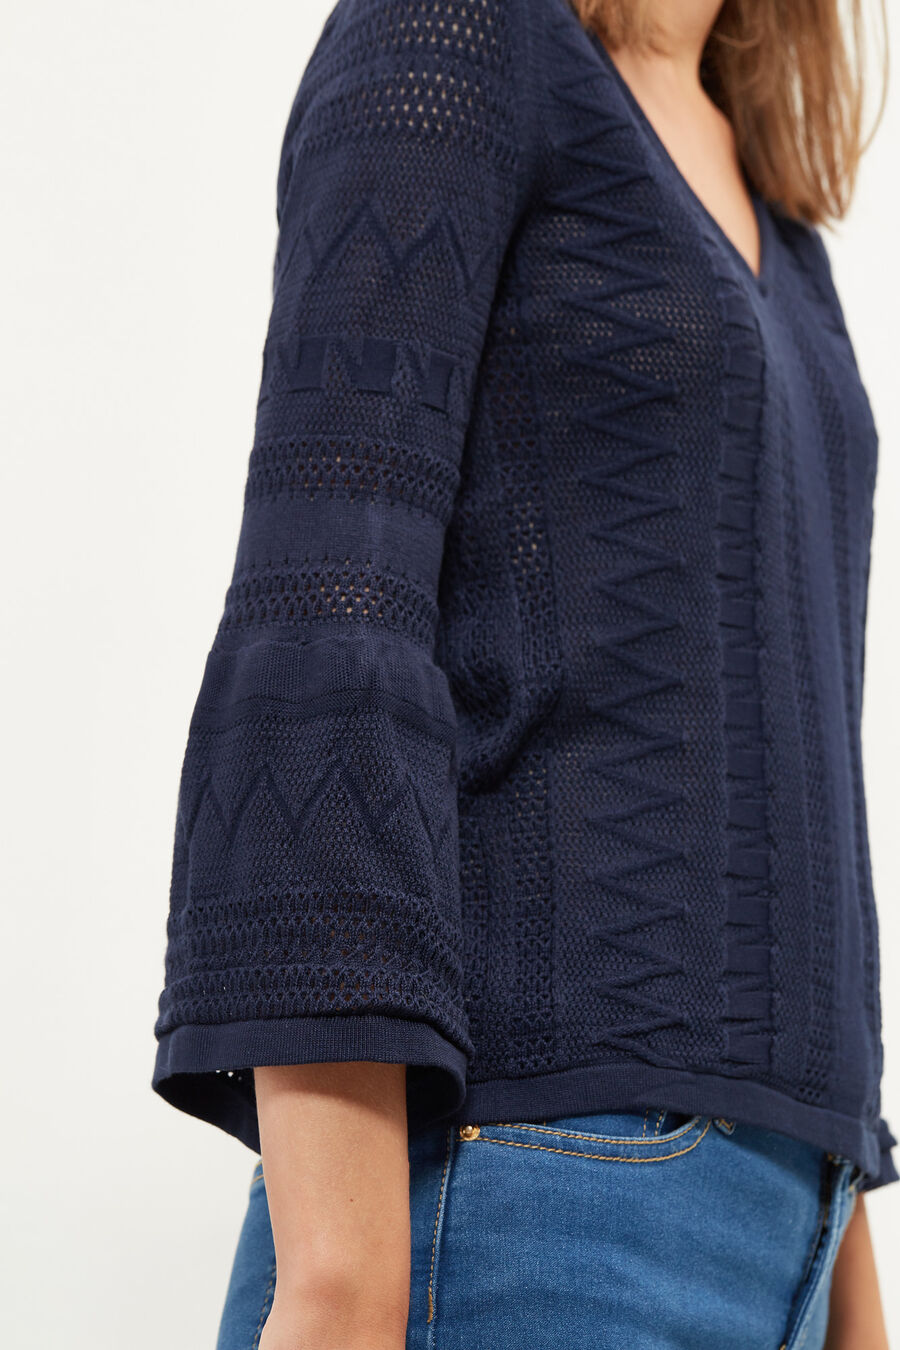 Open-knit jumper